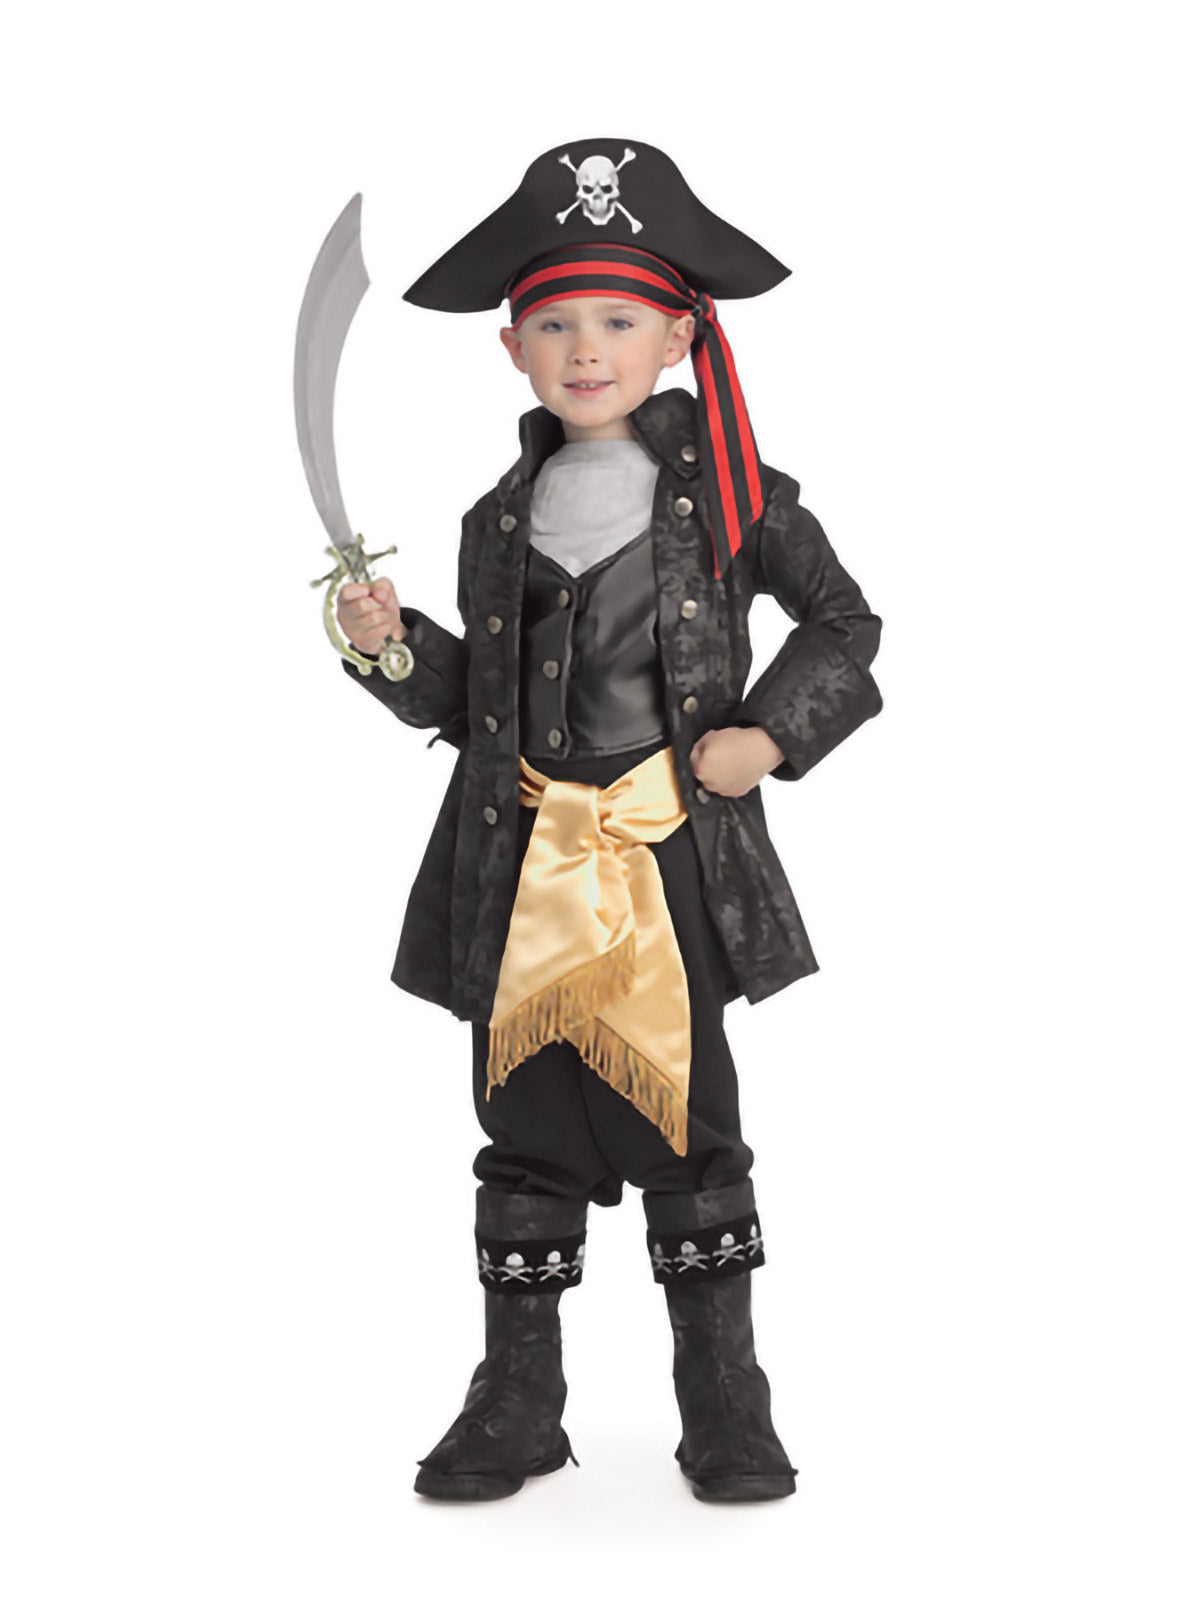 Captain Black Child Pirate Costume - Buy Online Only